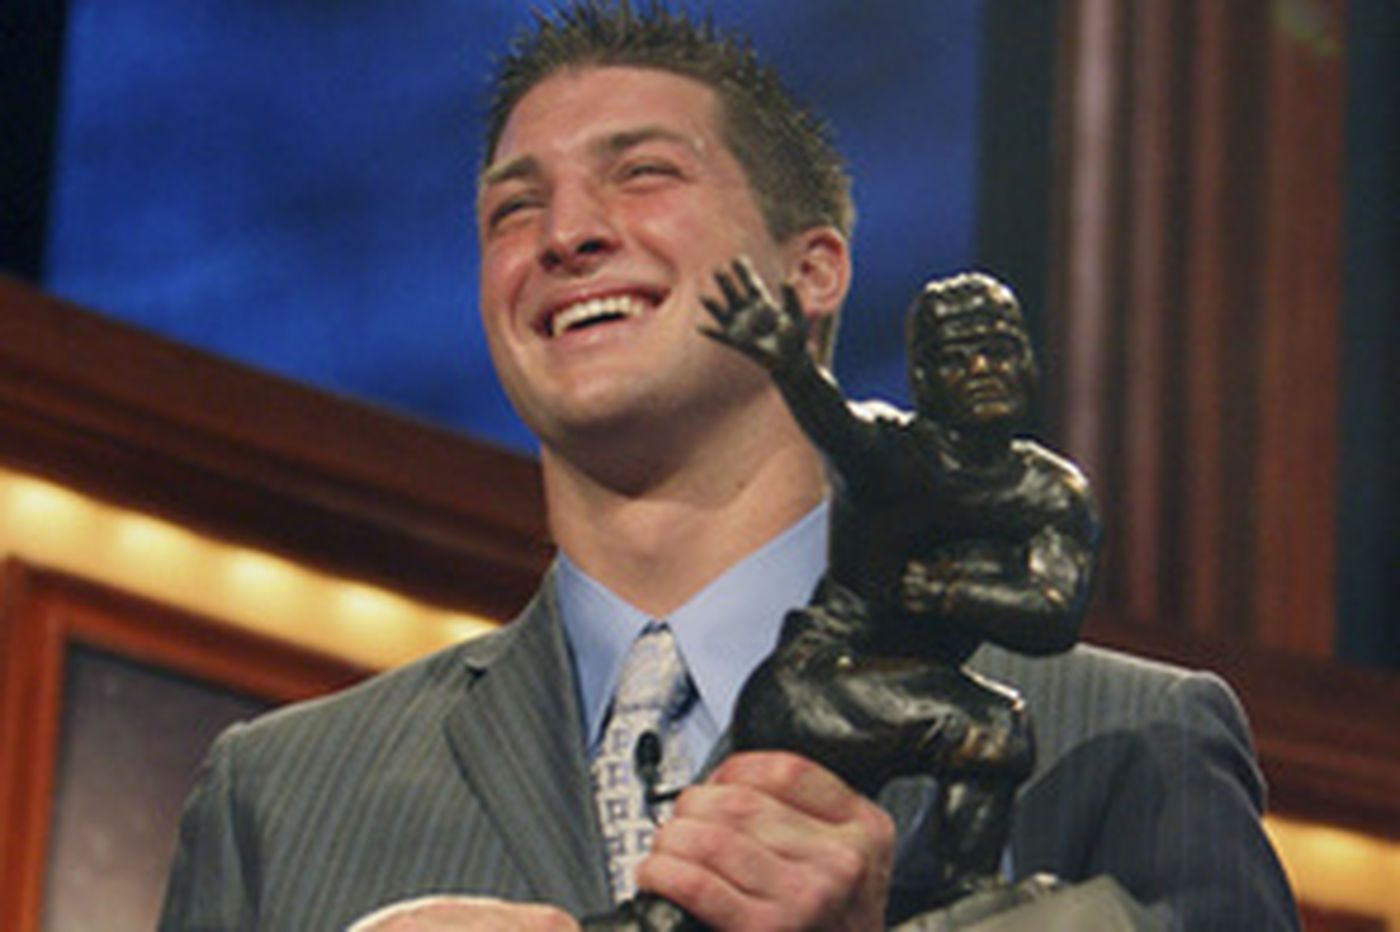 Florida QB Tebow takes home Heisman